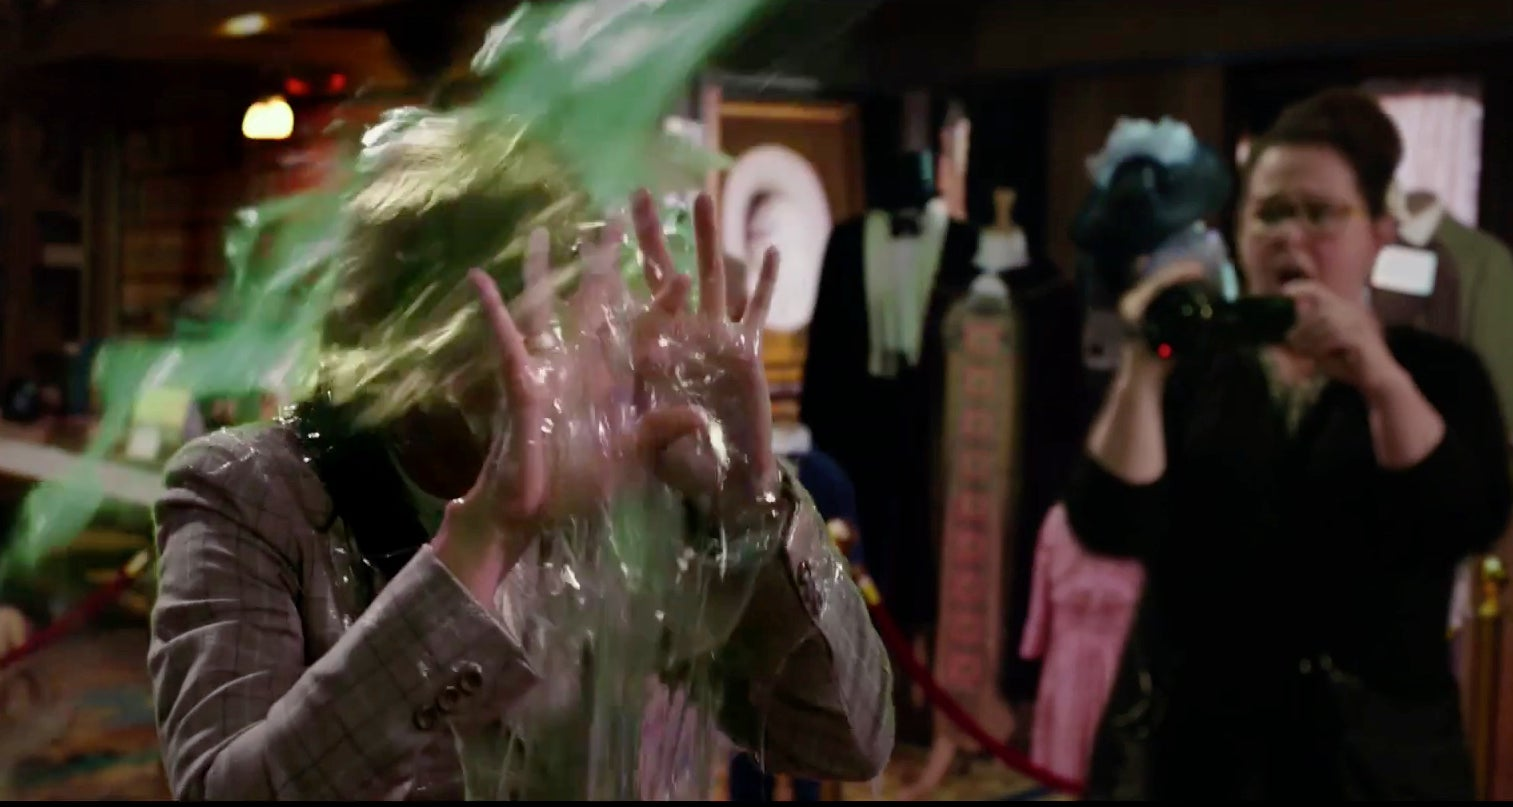 Watch A Particle Physicist Get Puked On In The New 'Ghostbusters' Trailer